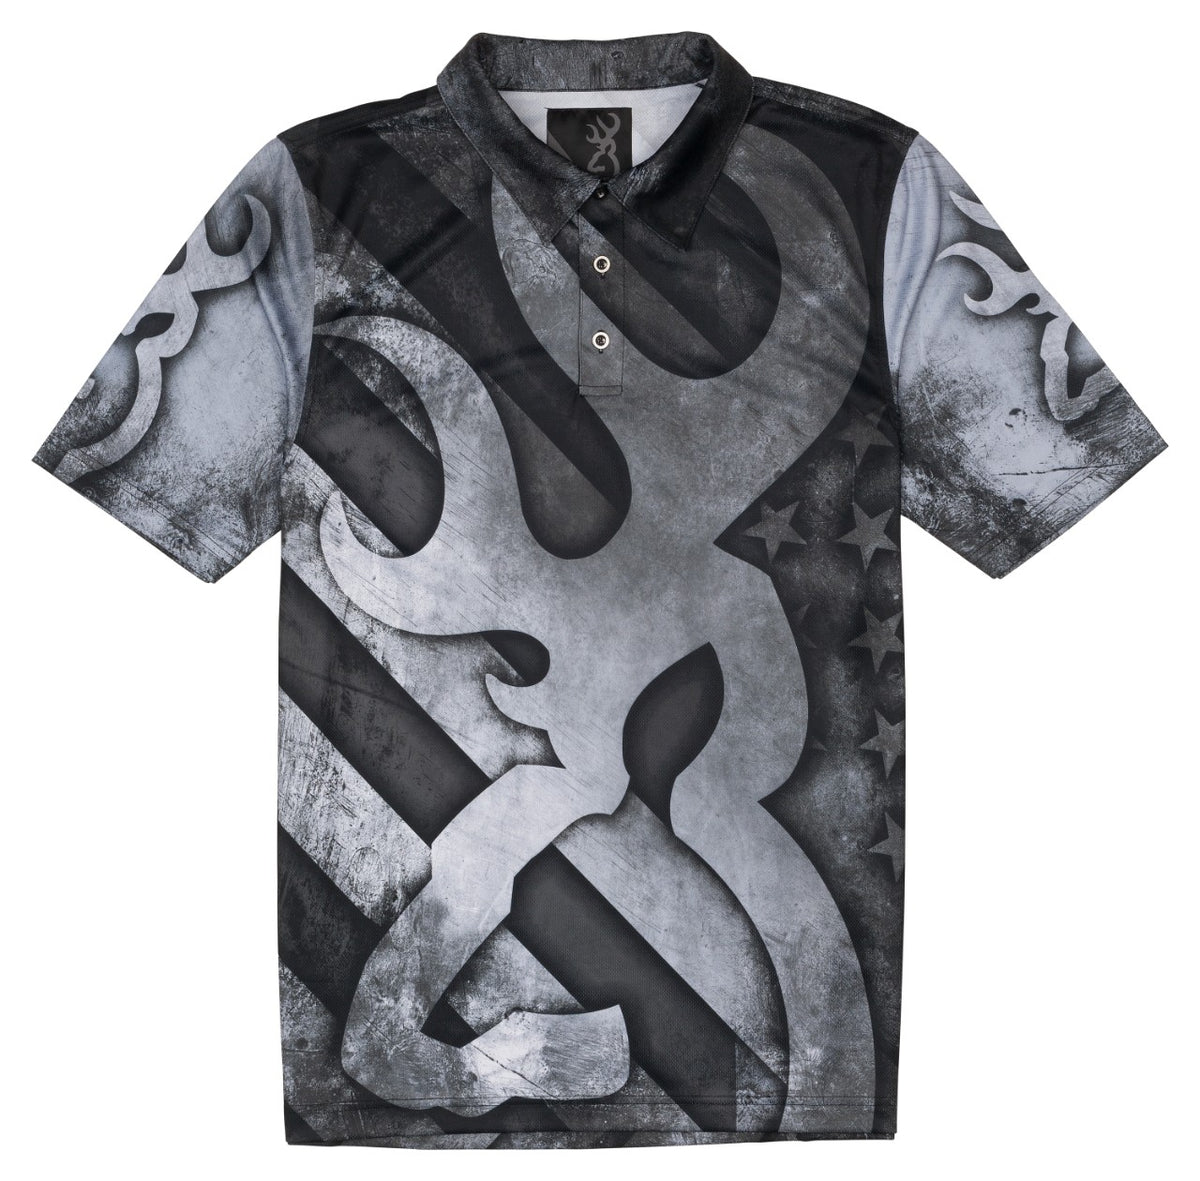 SHT,BROWNING TEAM,BLACK/WHITE,M